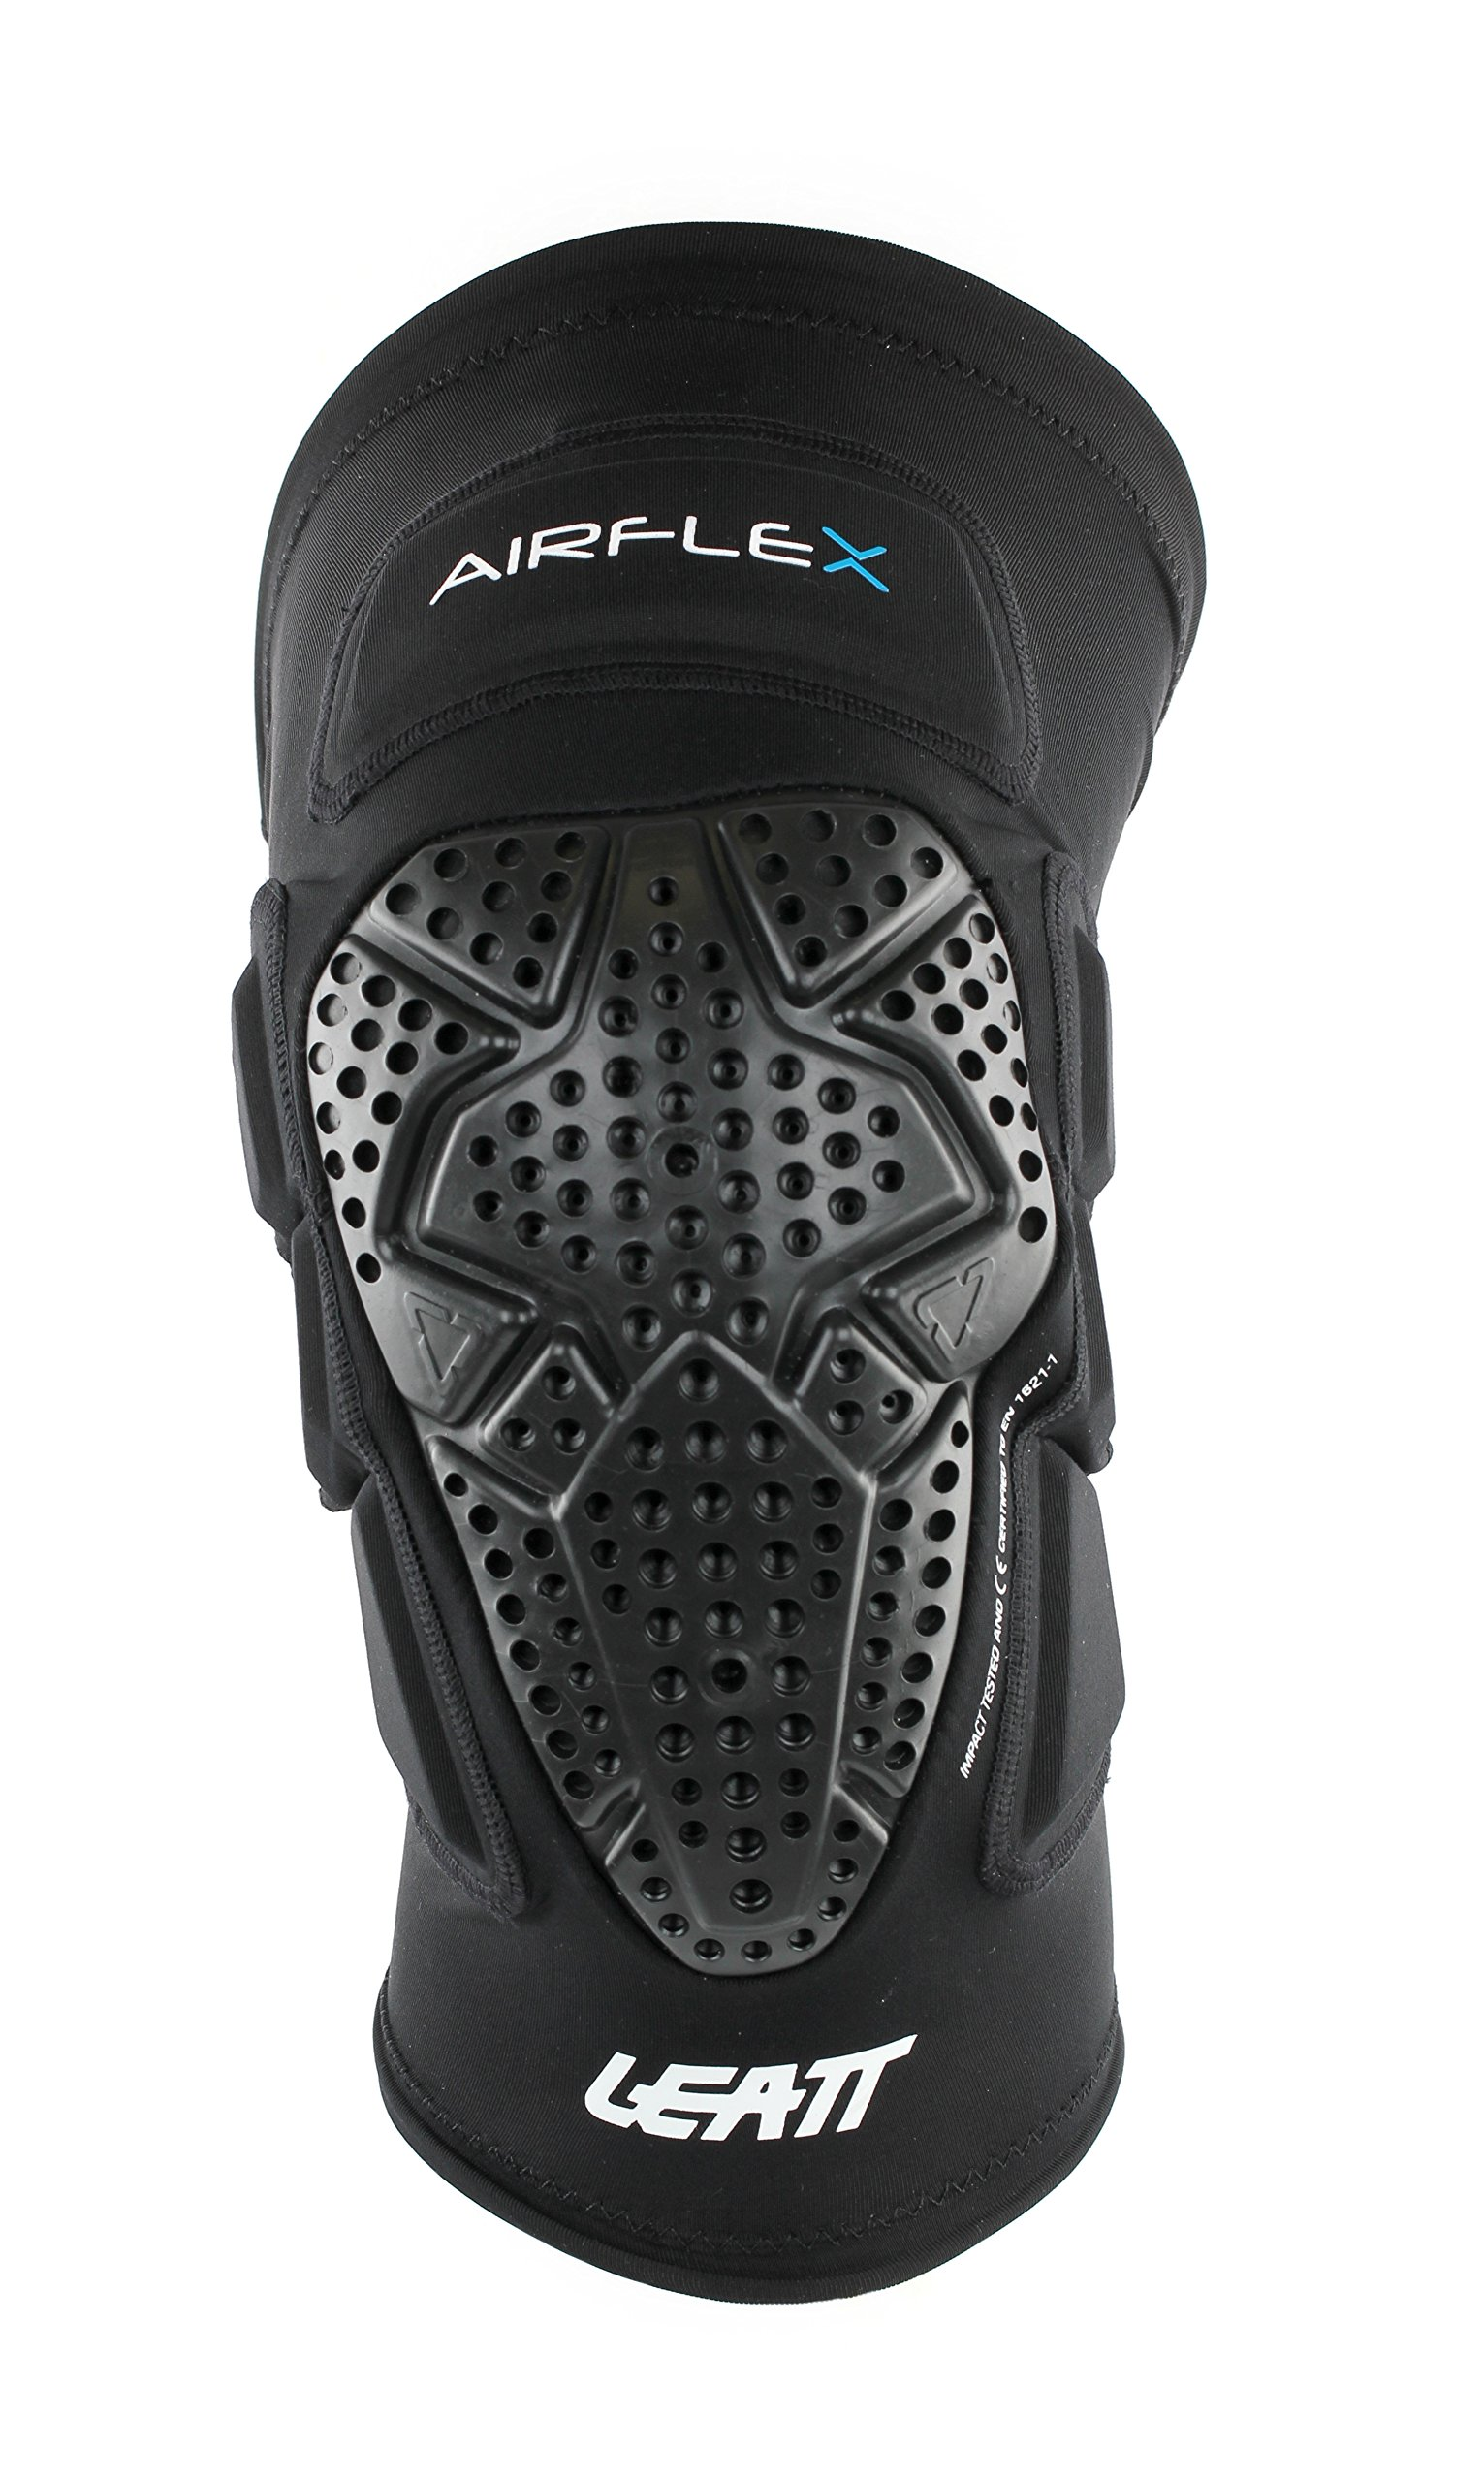 Leatt AirFlex Pro Knee Guard (Black, X-Large) by Leatt Brace